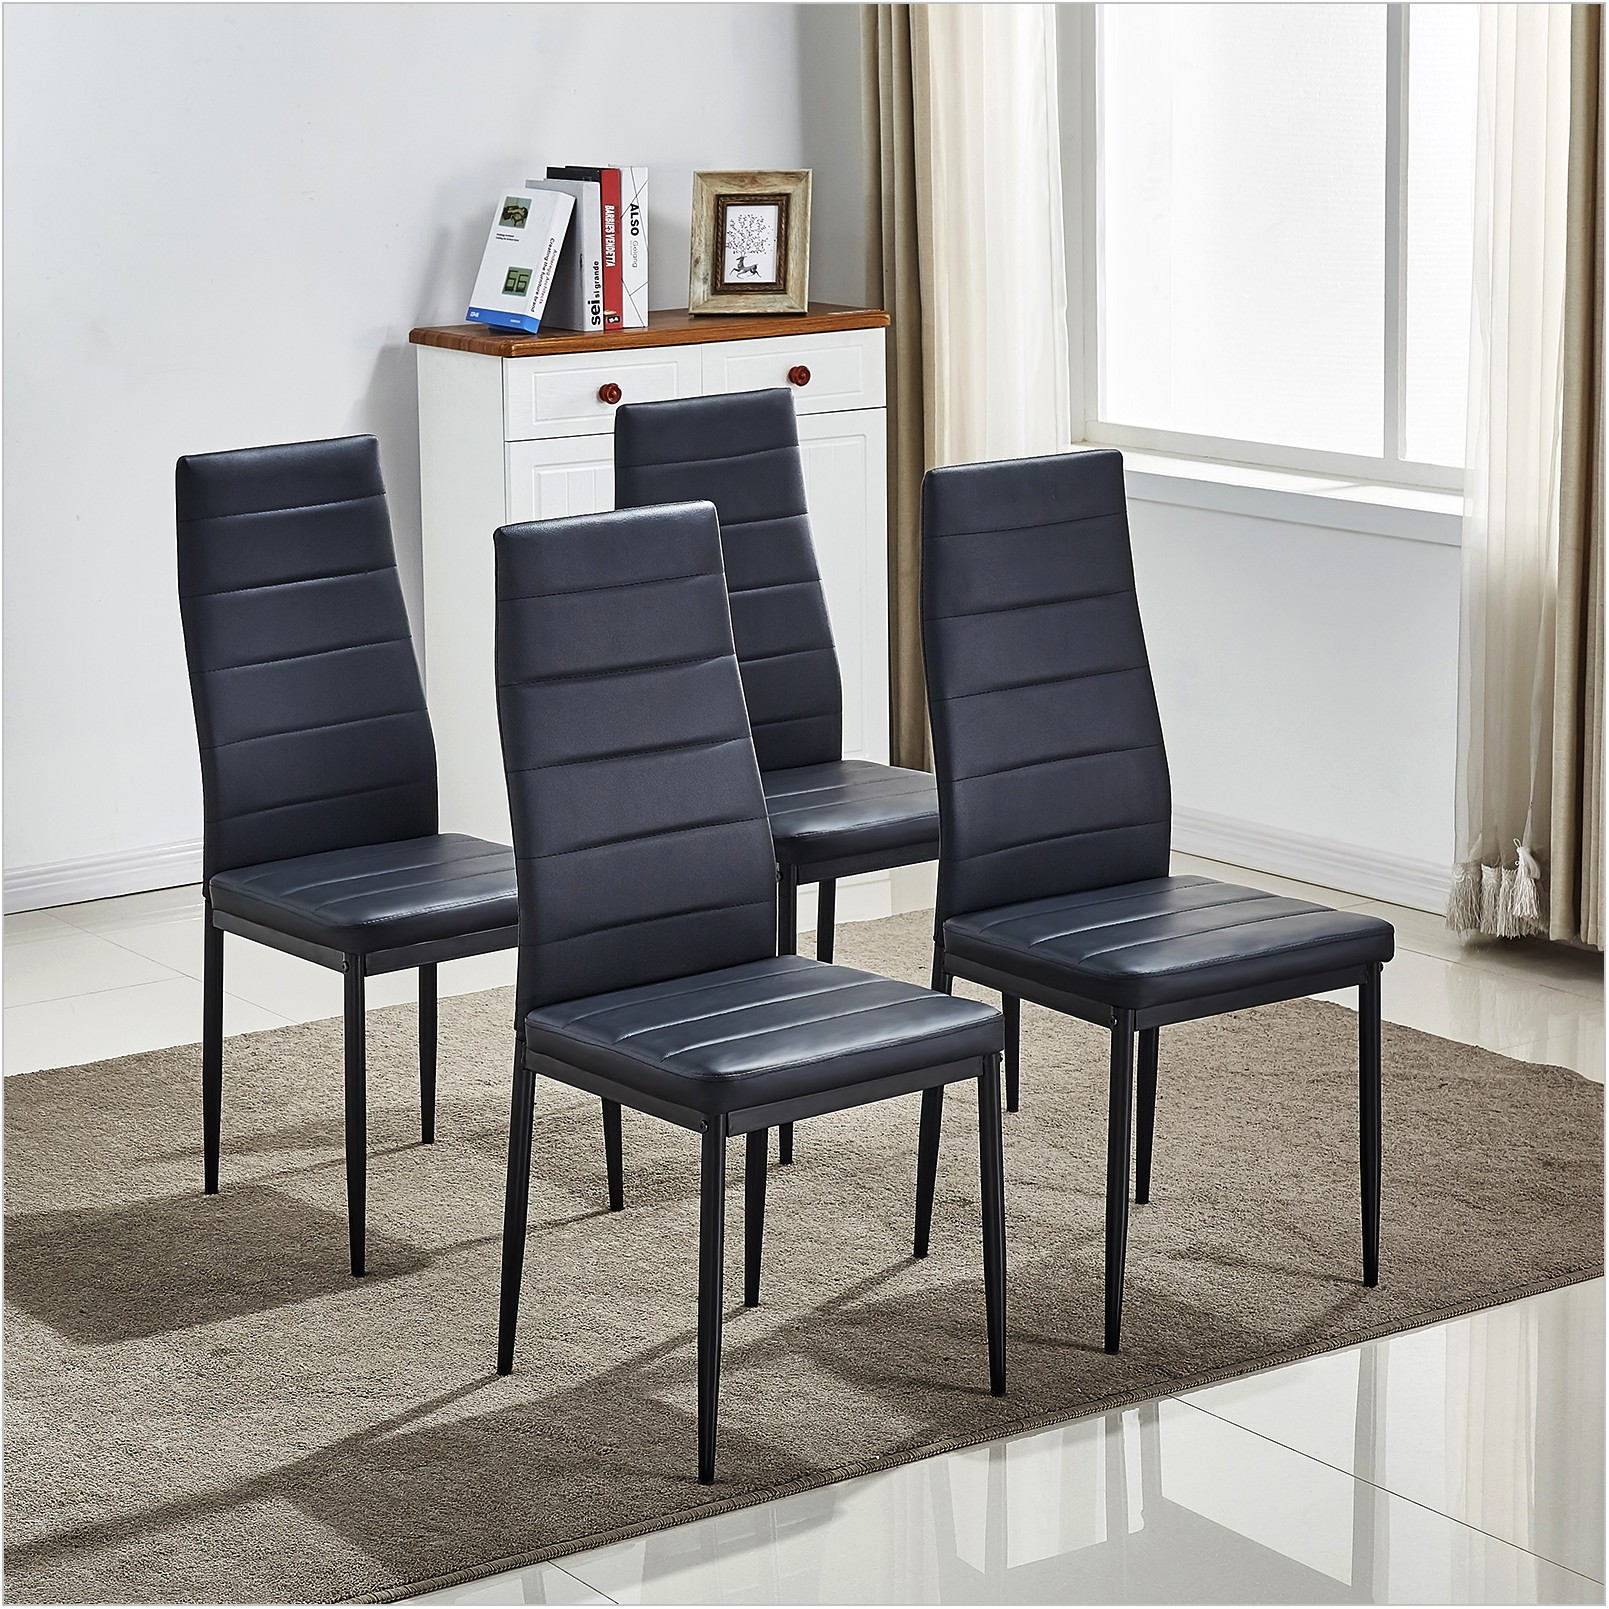 Metal Leg Dining Room Chairs